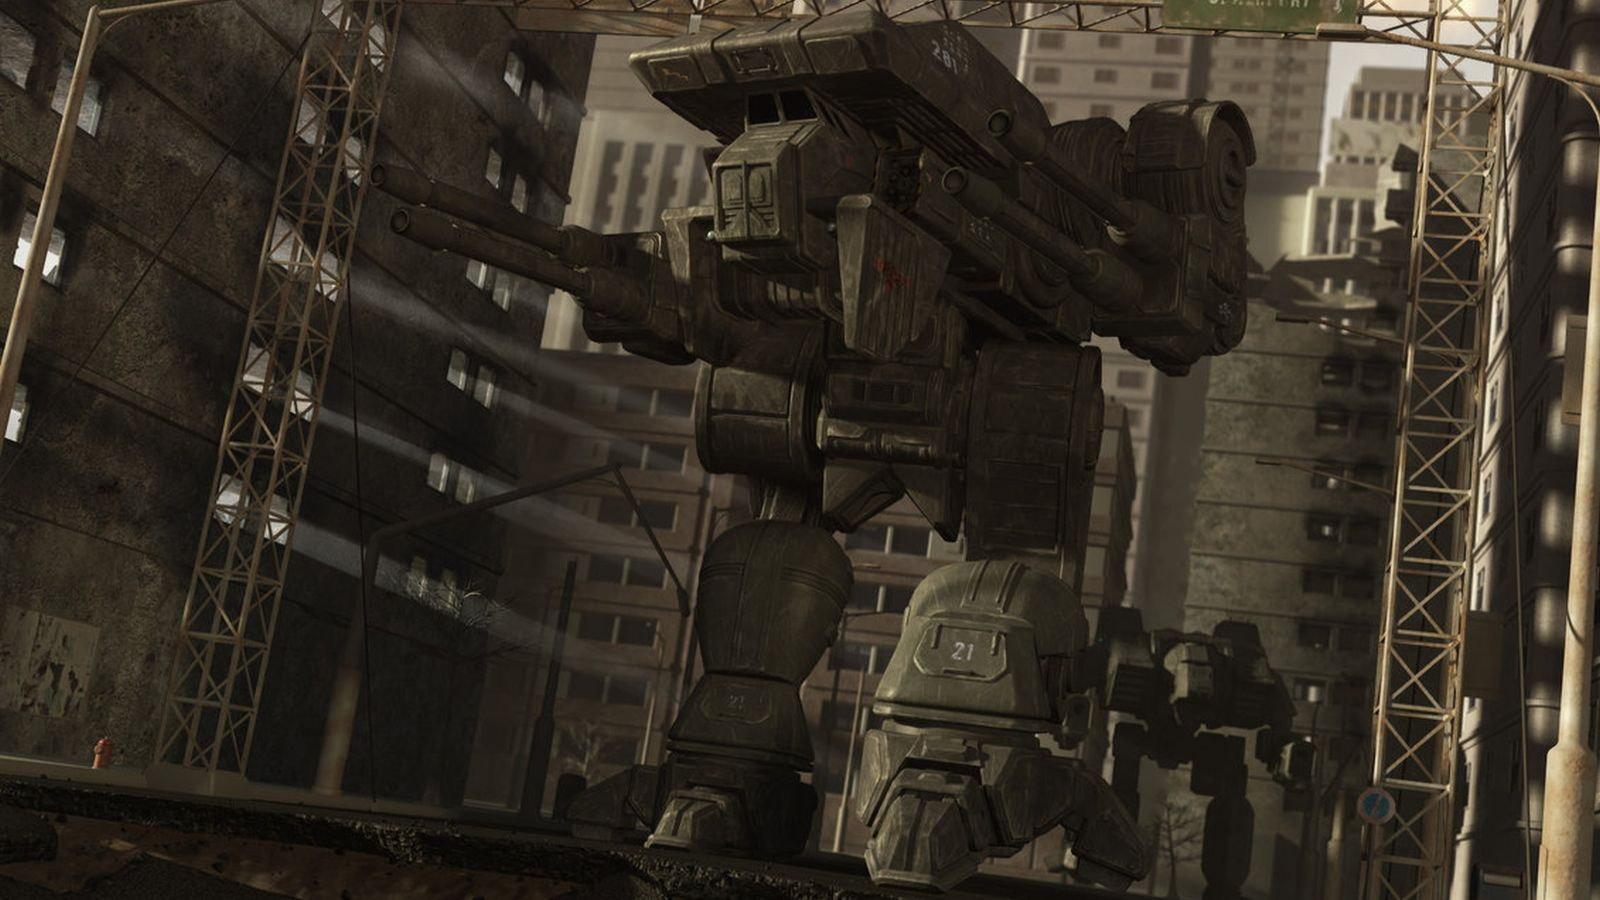 MechWarrior Wallpaper and Background Image | 1600x900 | ID ...